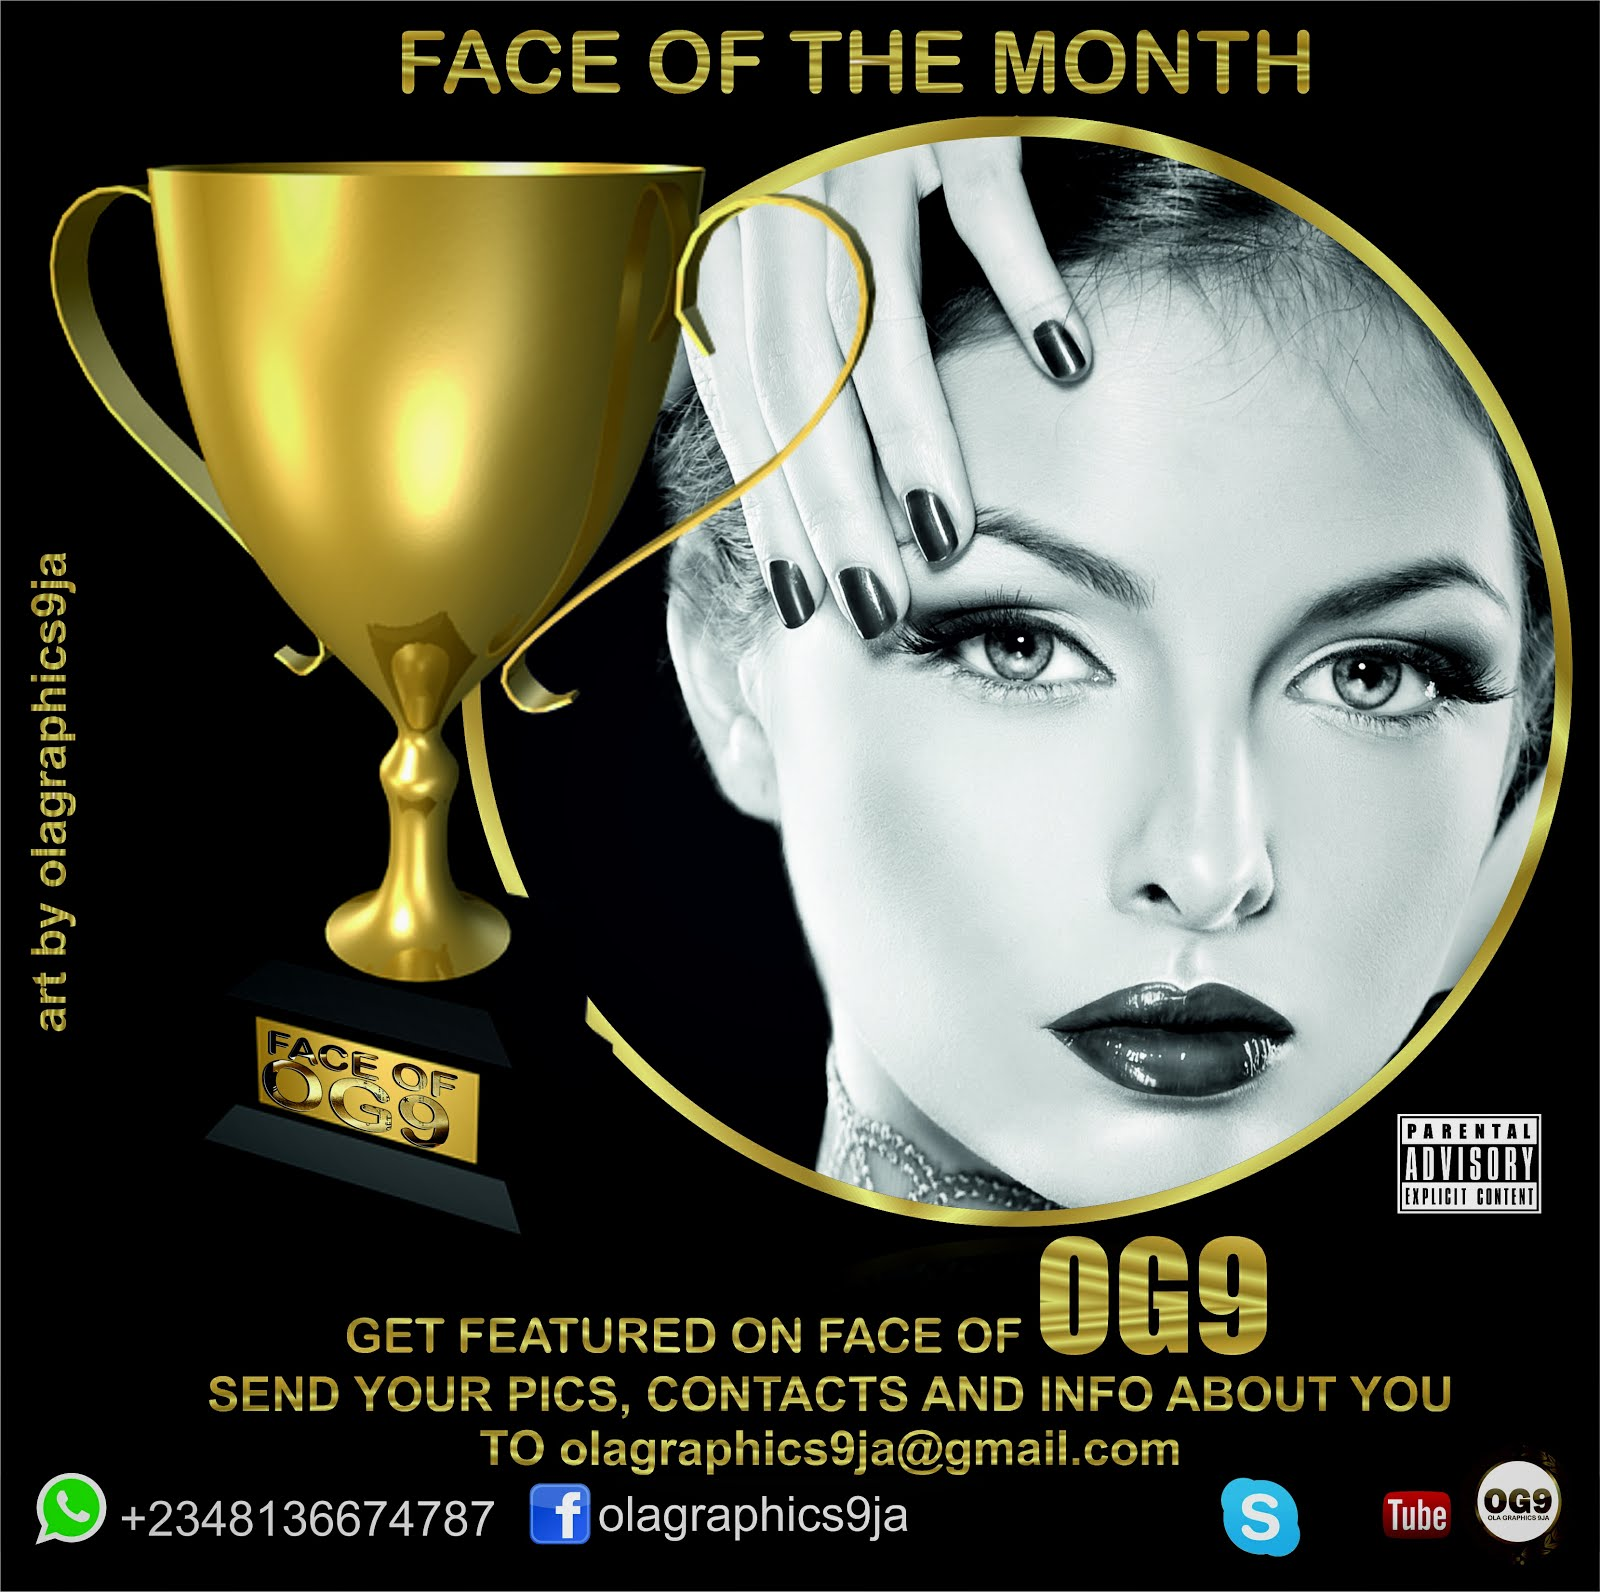 FACE OF OG9 CONTEST